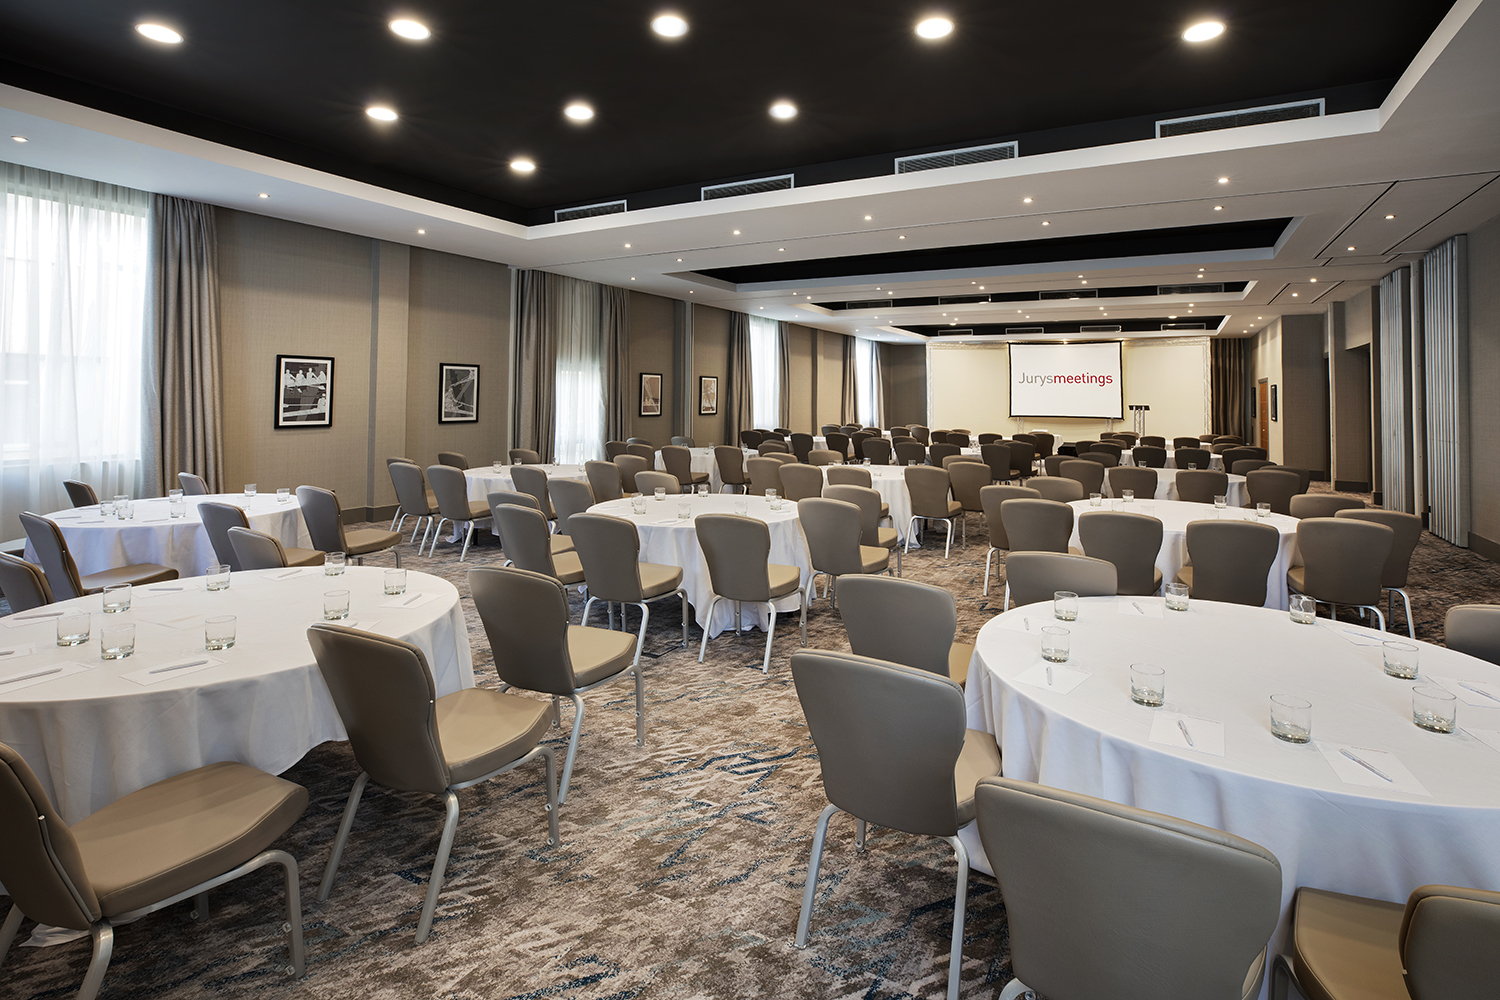 jurys inn oxford hotel and conference venue - experience